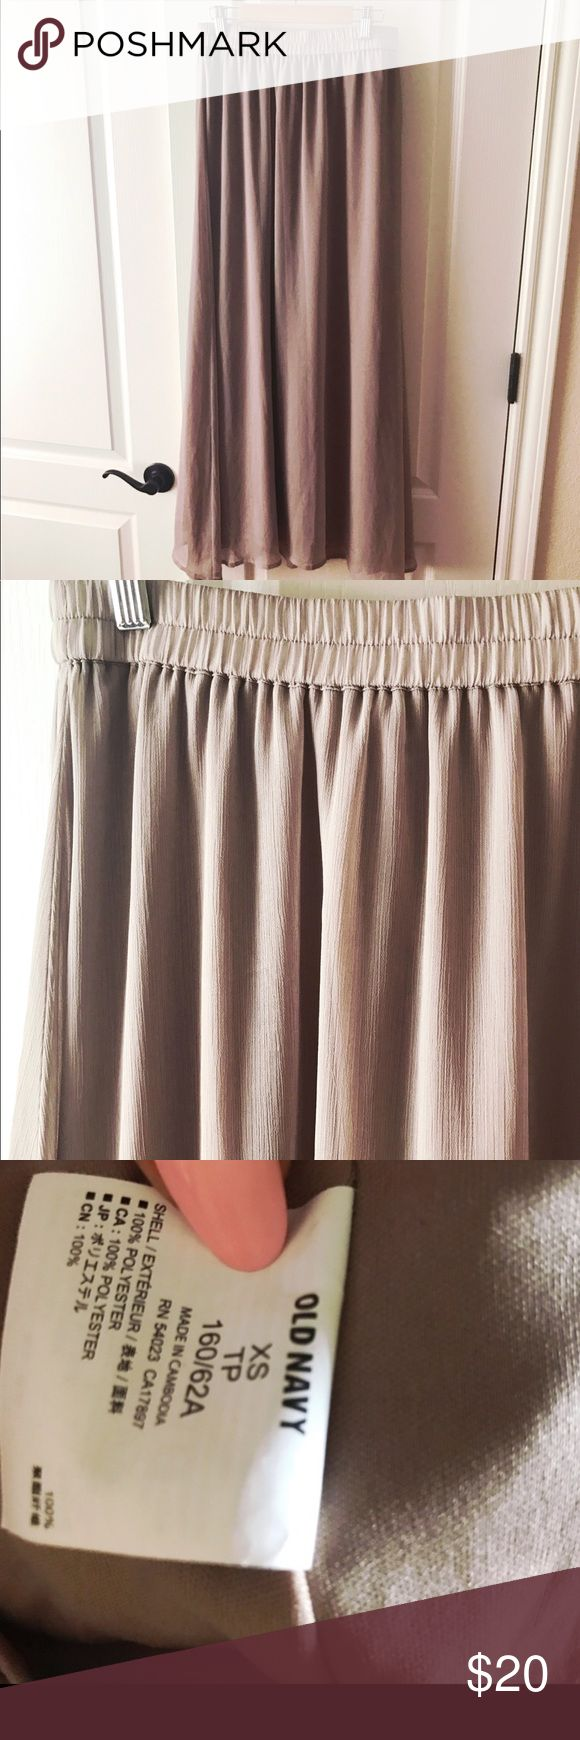 Old navy maxi skirt Beautiful taupe colored maxi skirt! Perfect condition! Elasticized waist band and if fully lined. ❌ NO TRADES ❌ Old Navy Skirts Maxi